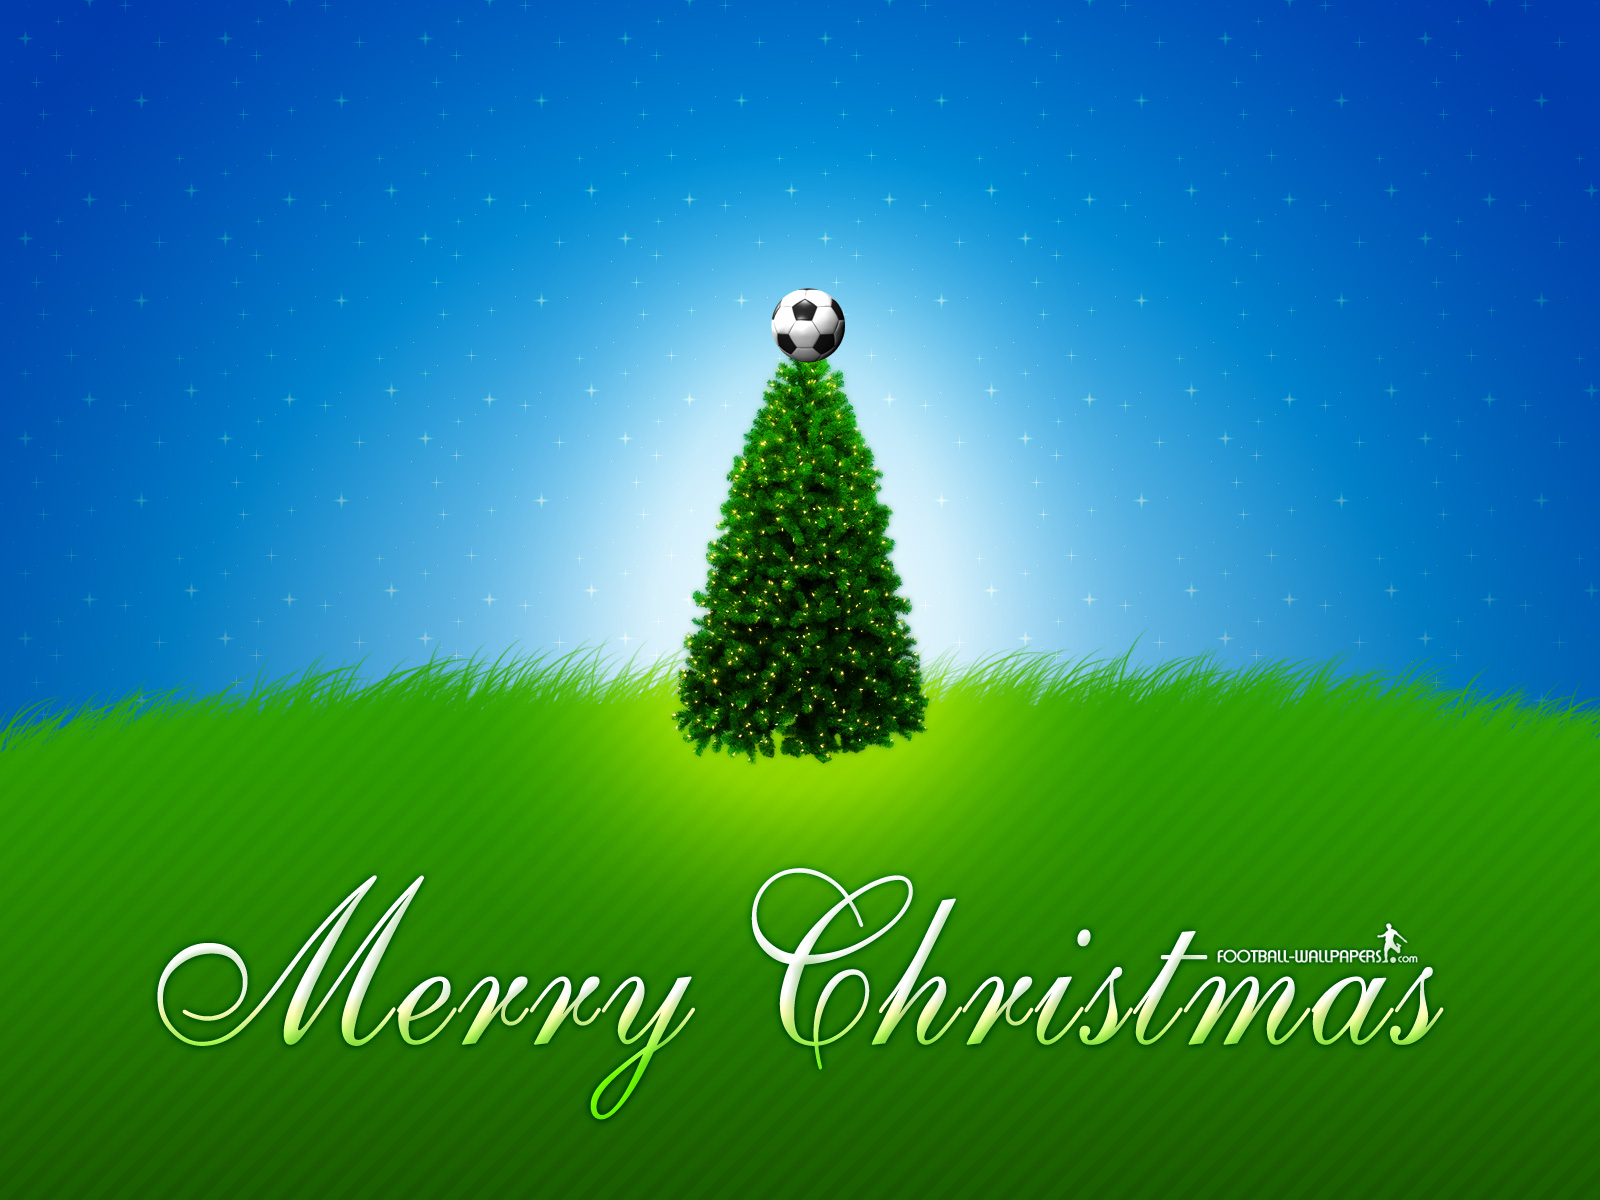 Football Wallpaper Christmas 2010 Wallpapers Download Jpeg Gif Bitmap Png High Resolution Image Poster Pic Photo